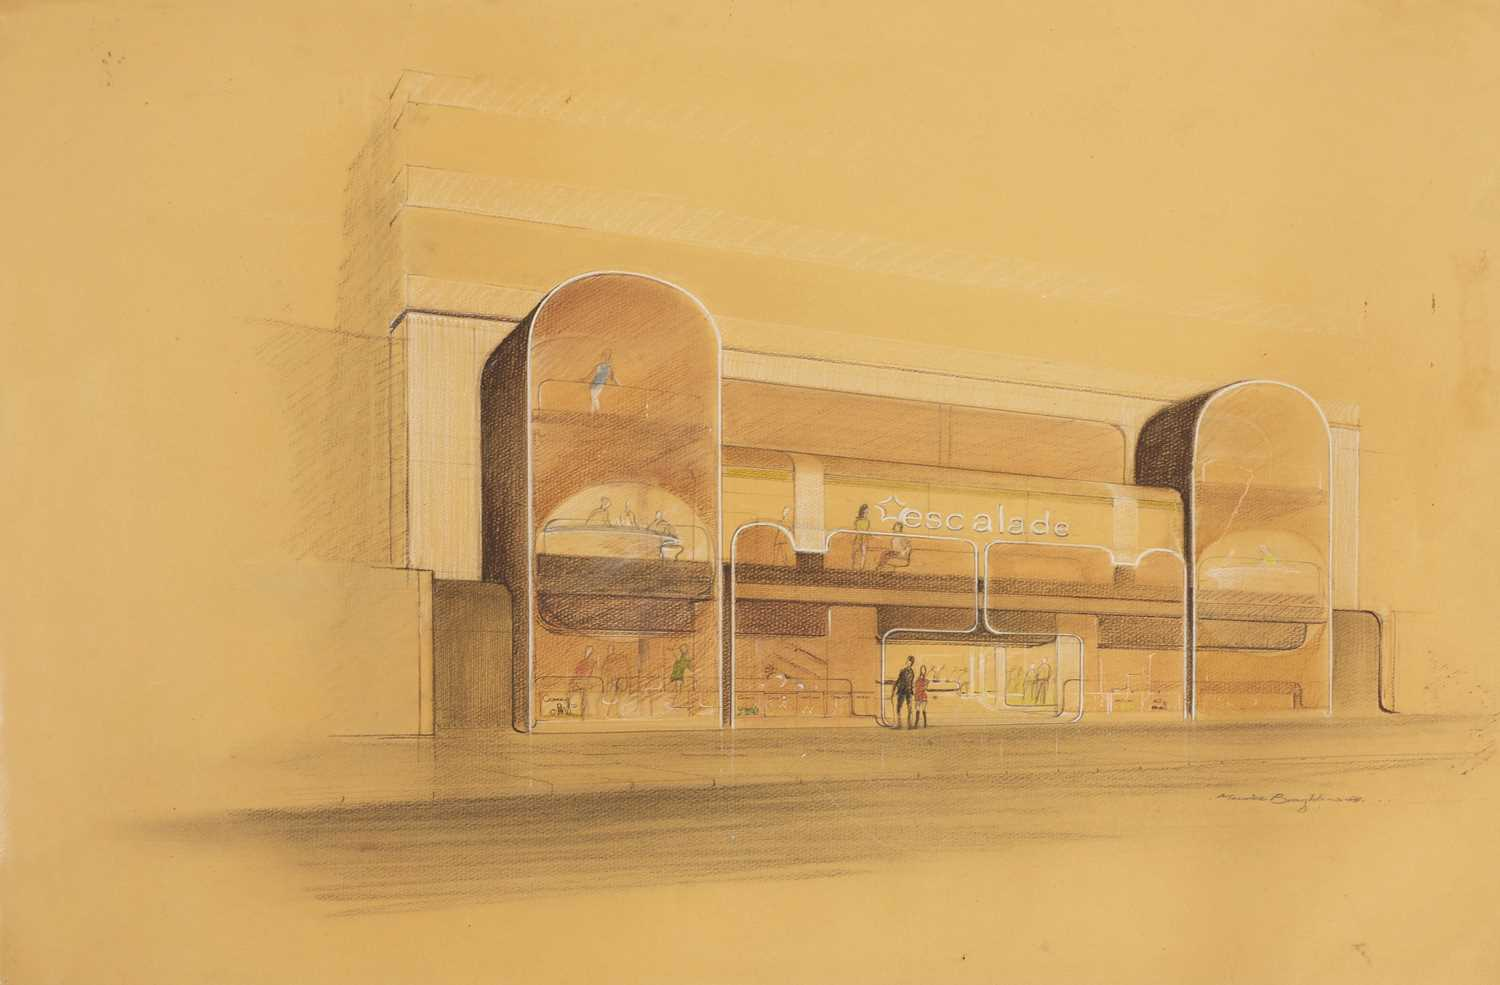 Maurice Broughton Associates, - Image 7 of 7